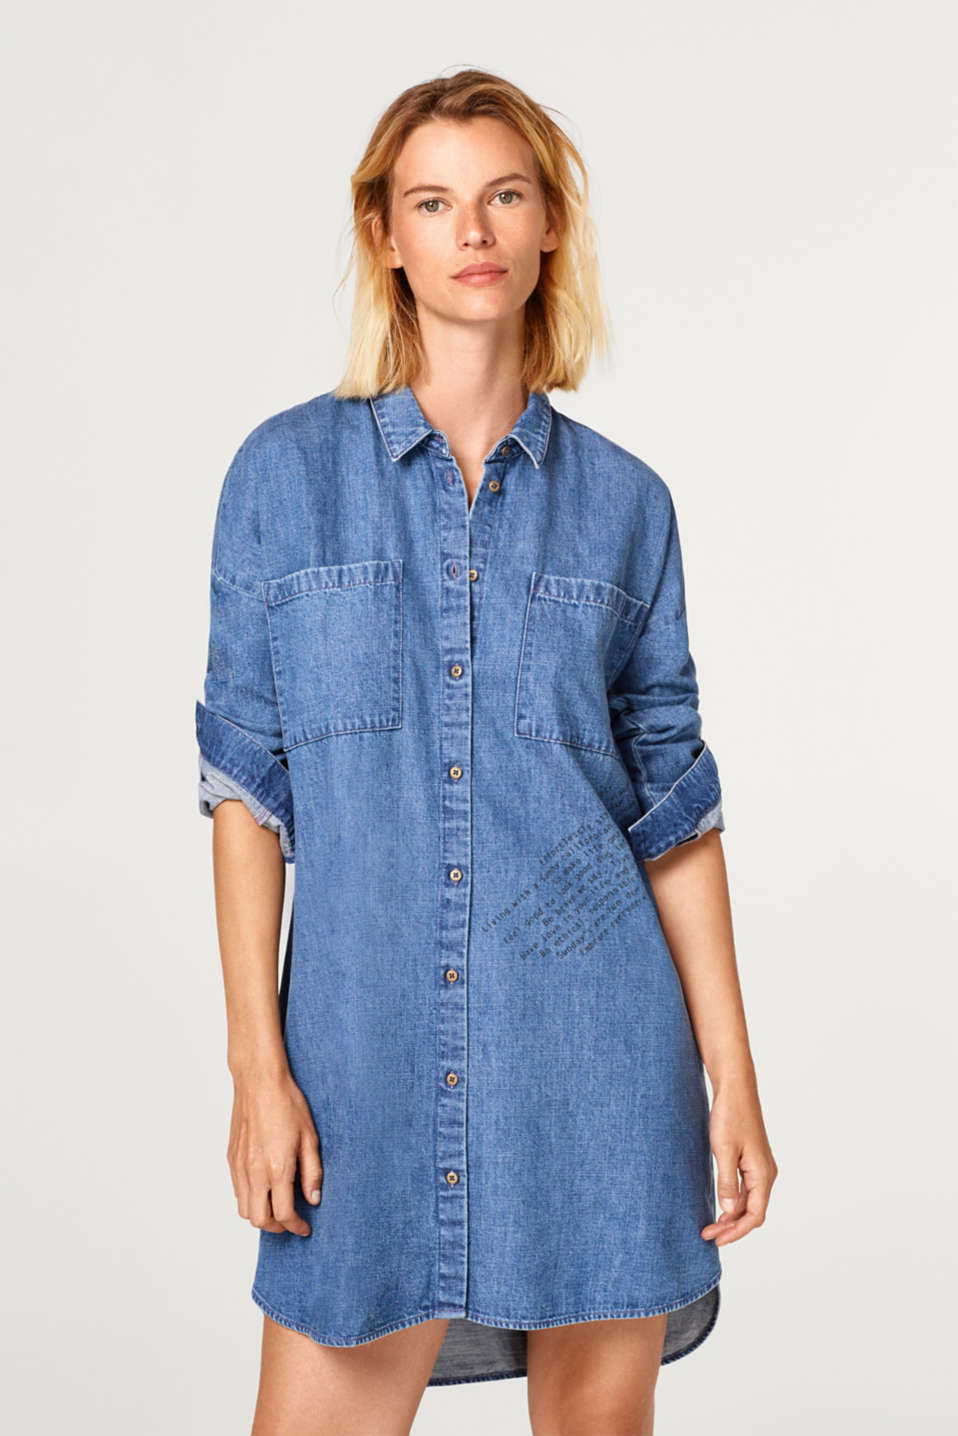 edc - Denim dress with a printed statement, 100% cotton